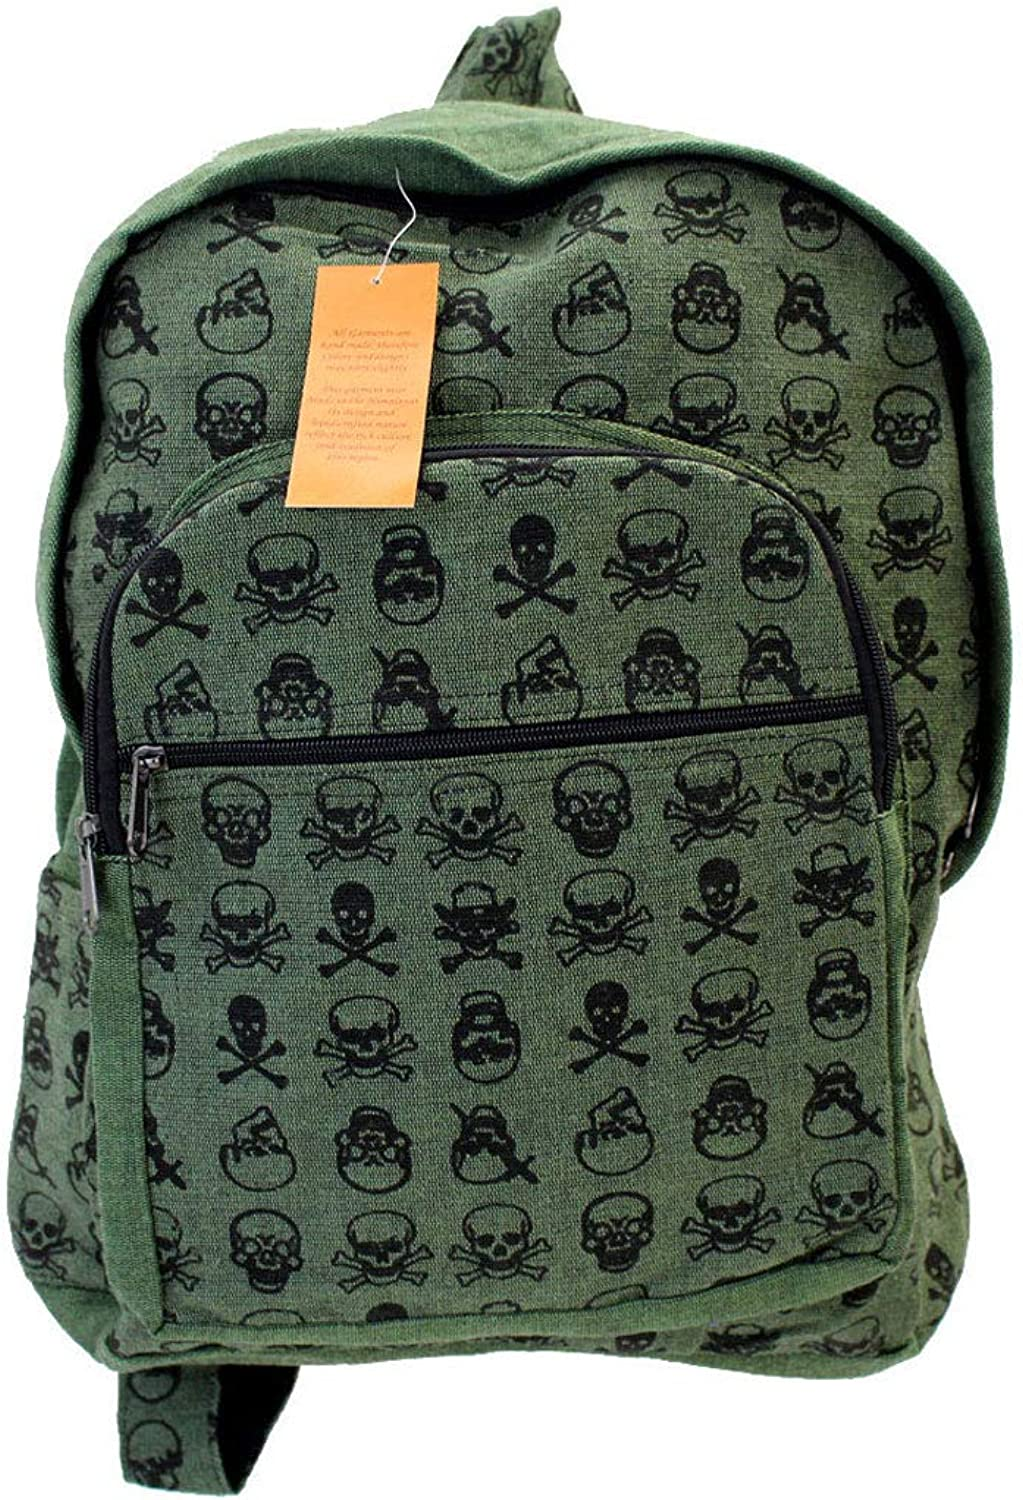 Fair Trade Skull Backpack, Handcrafted in the Himalayas (Green)